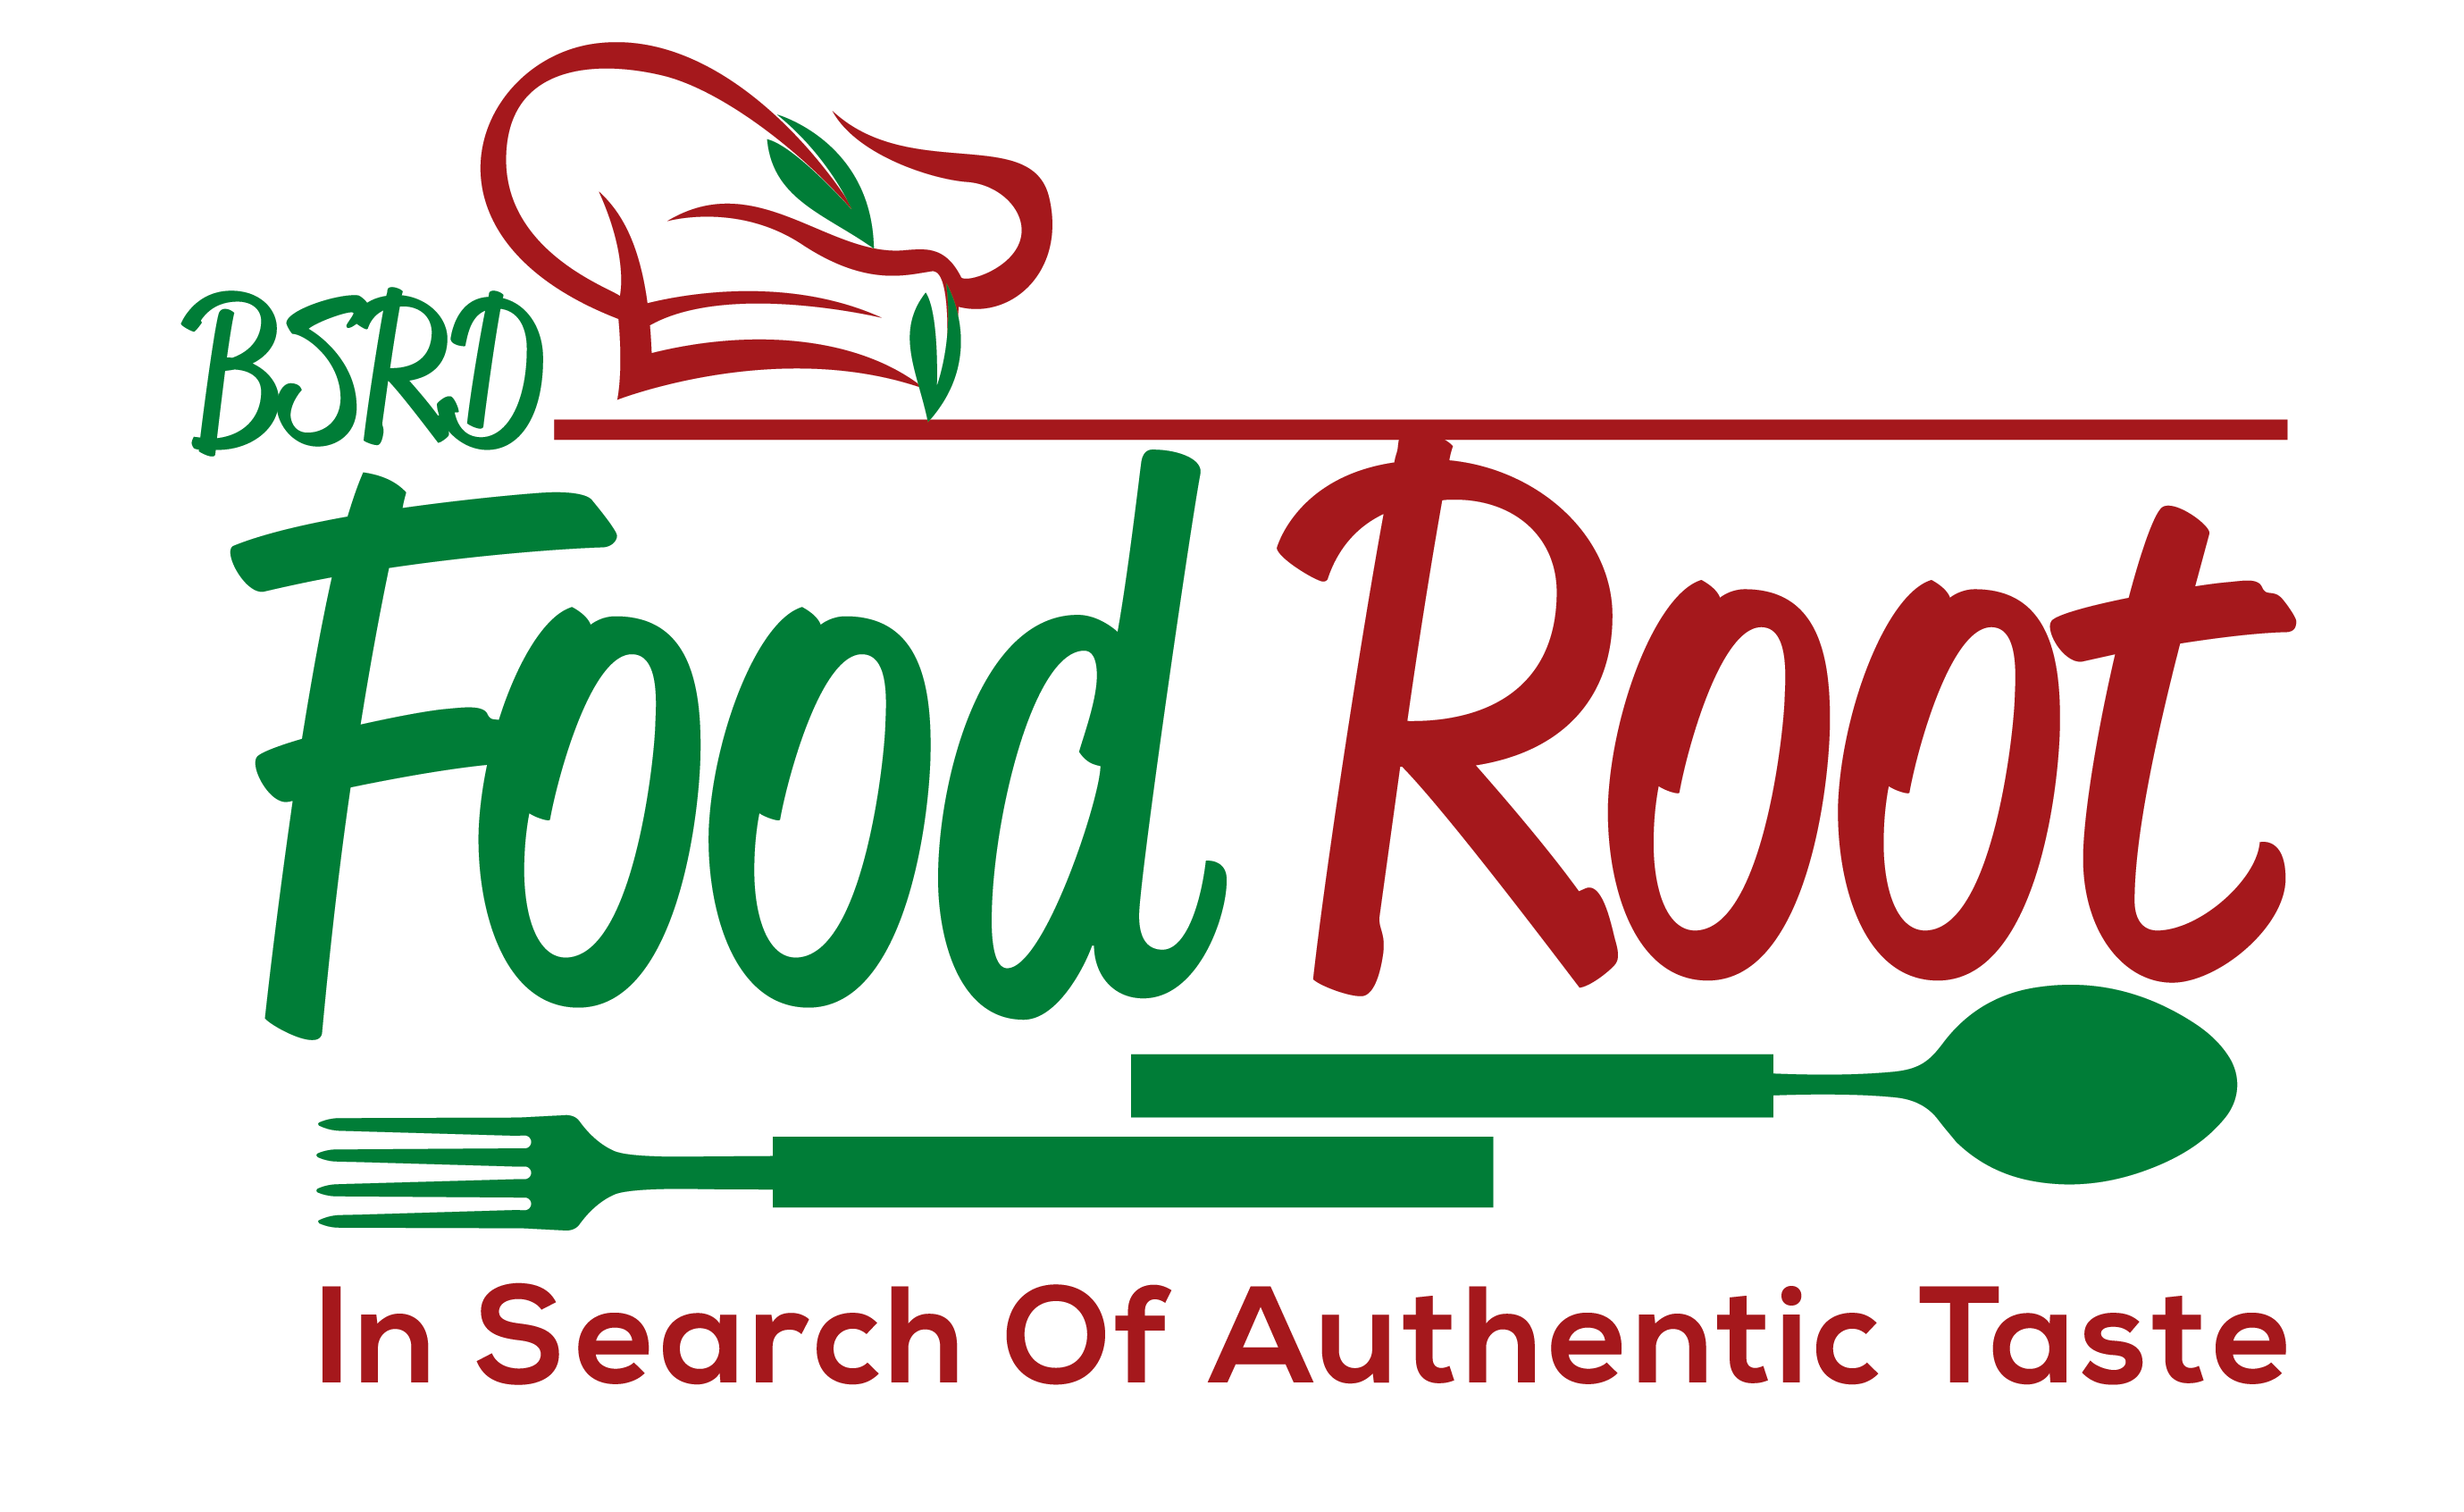 Foodroot Catering Services